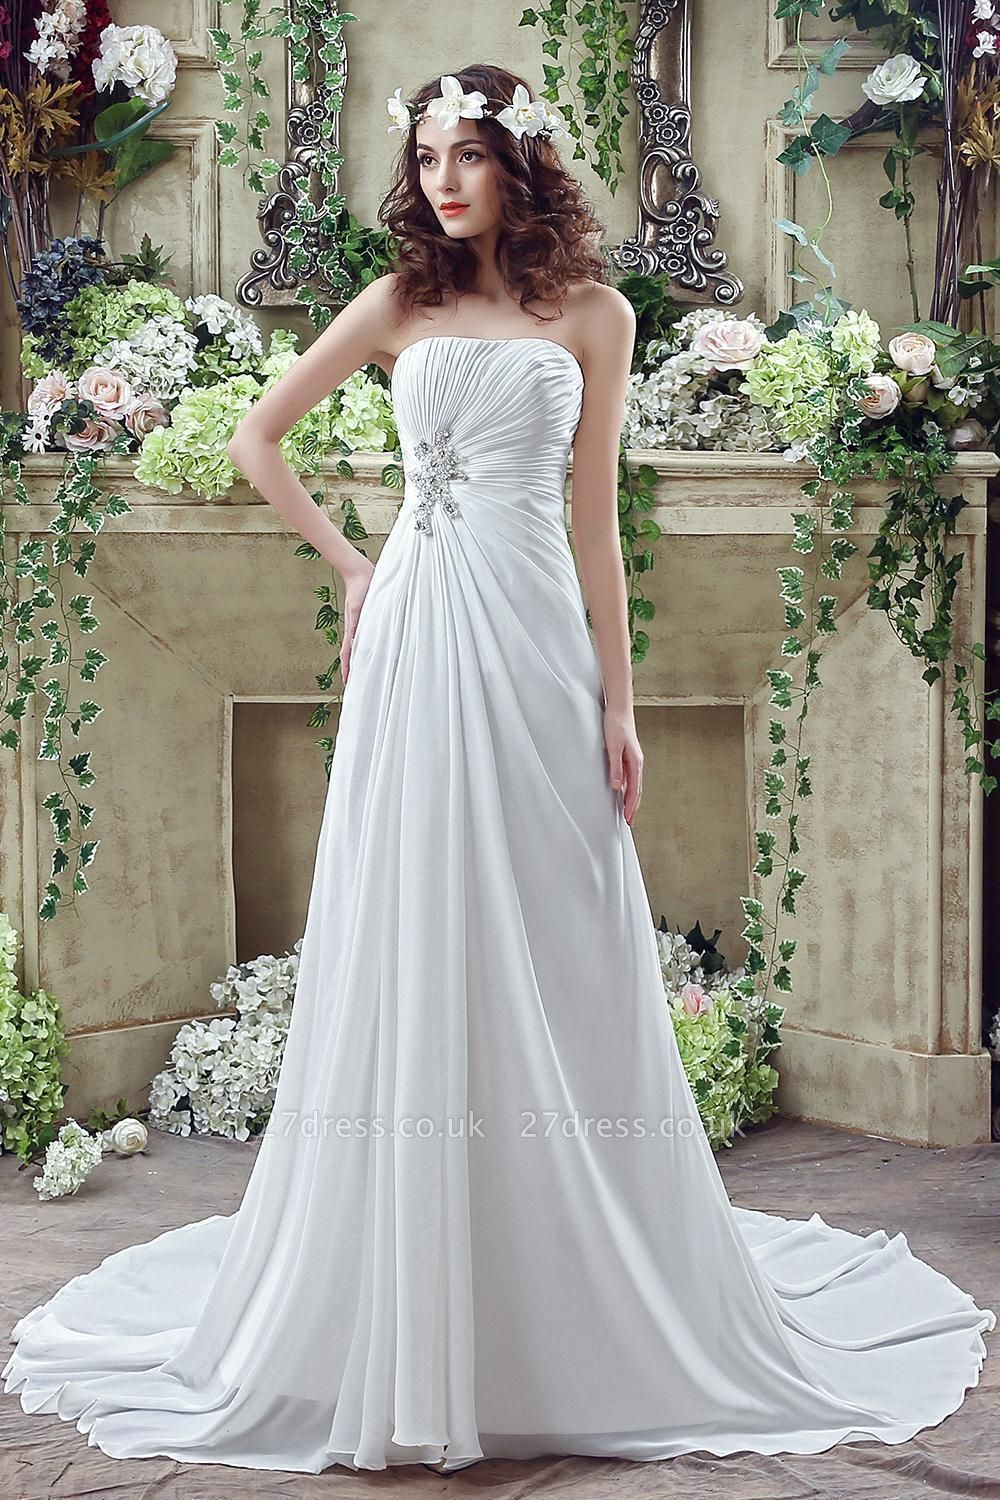 Newest Strapless White Beadss Wedding Dress A-line Sweep Train